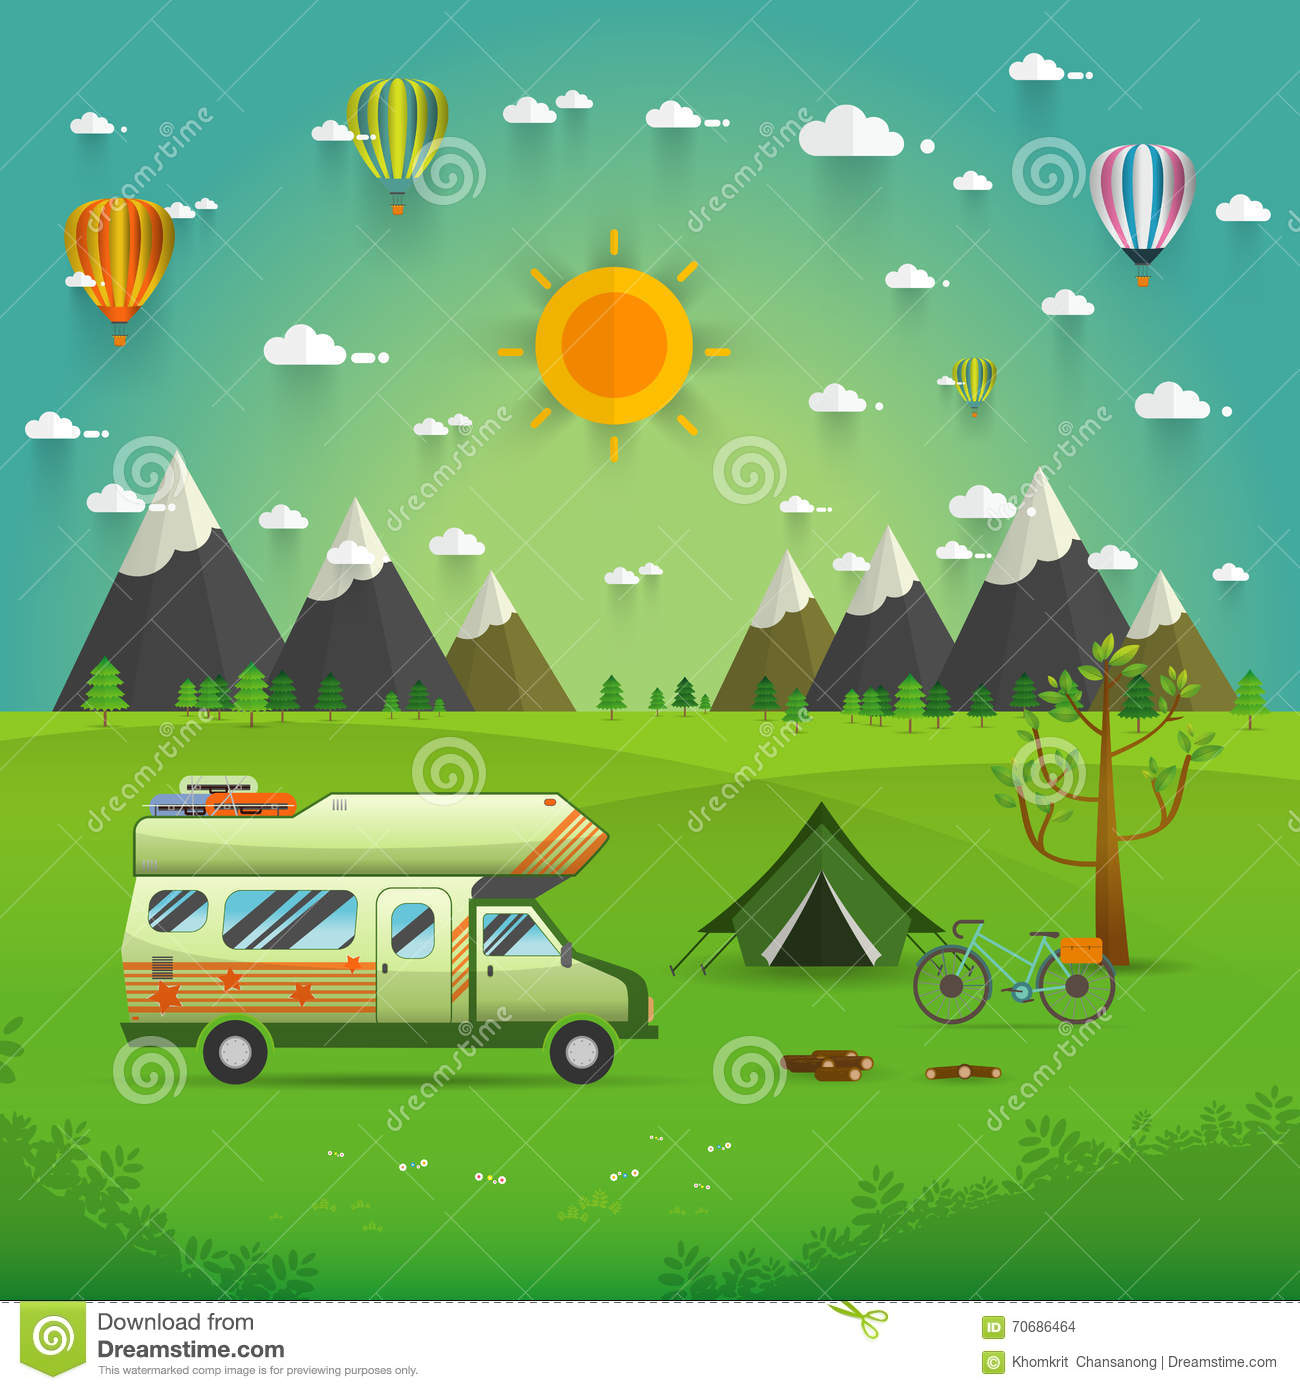 national mountain park camping scene vector illustration motorhome clipart images Motorhome Camping